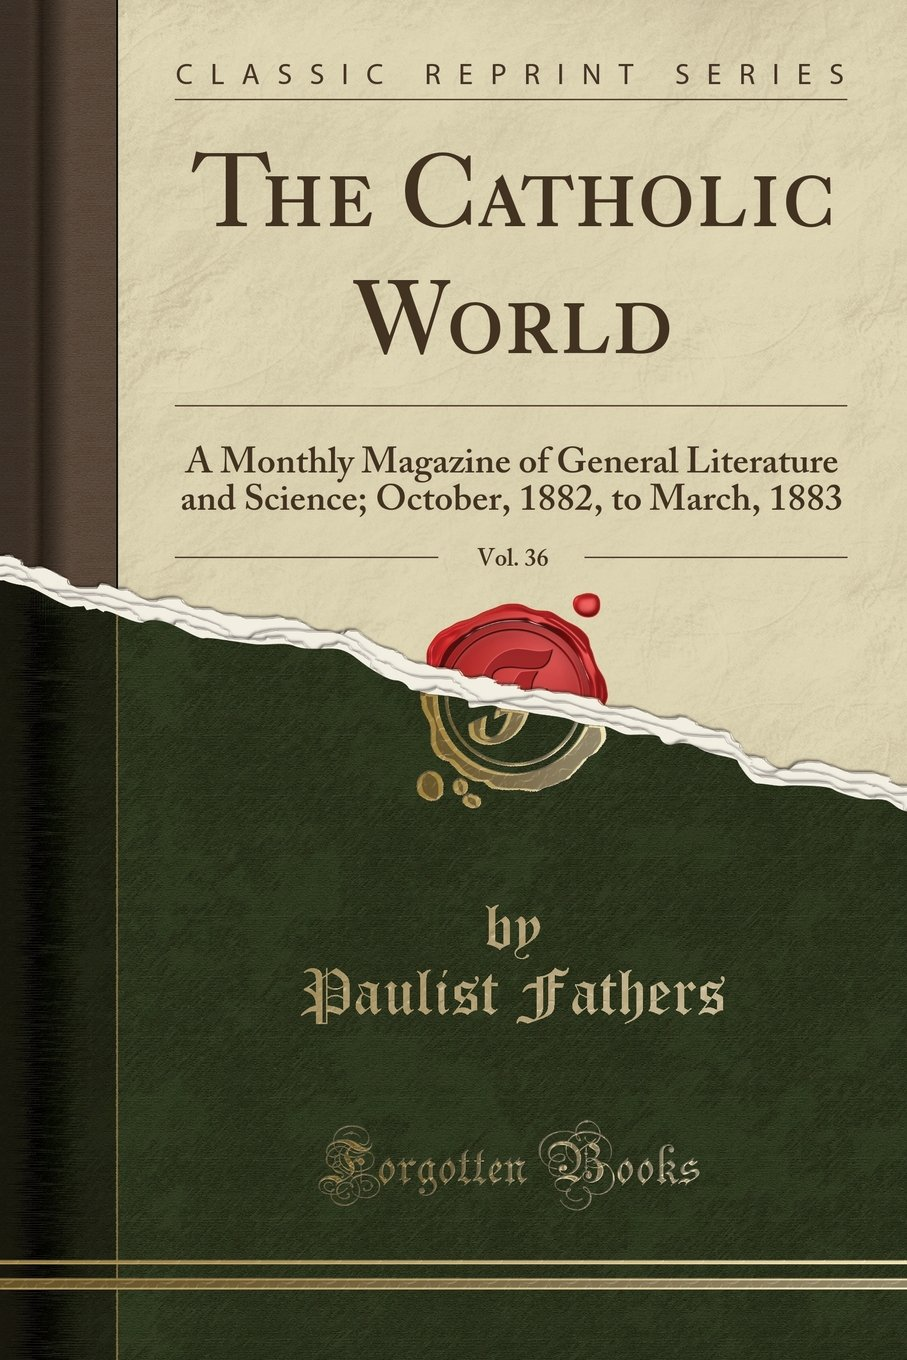 The Catholic World, Vol. 36: A Monthly Magazine of General Literature and Science; October, 1882, to March, 1883 (Classic Reprint) ebook